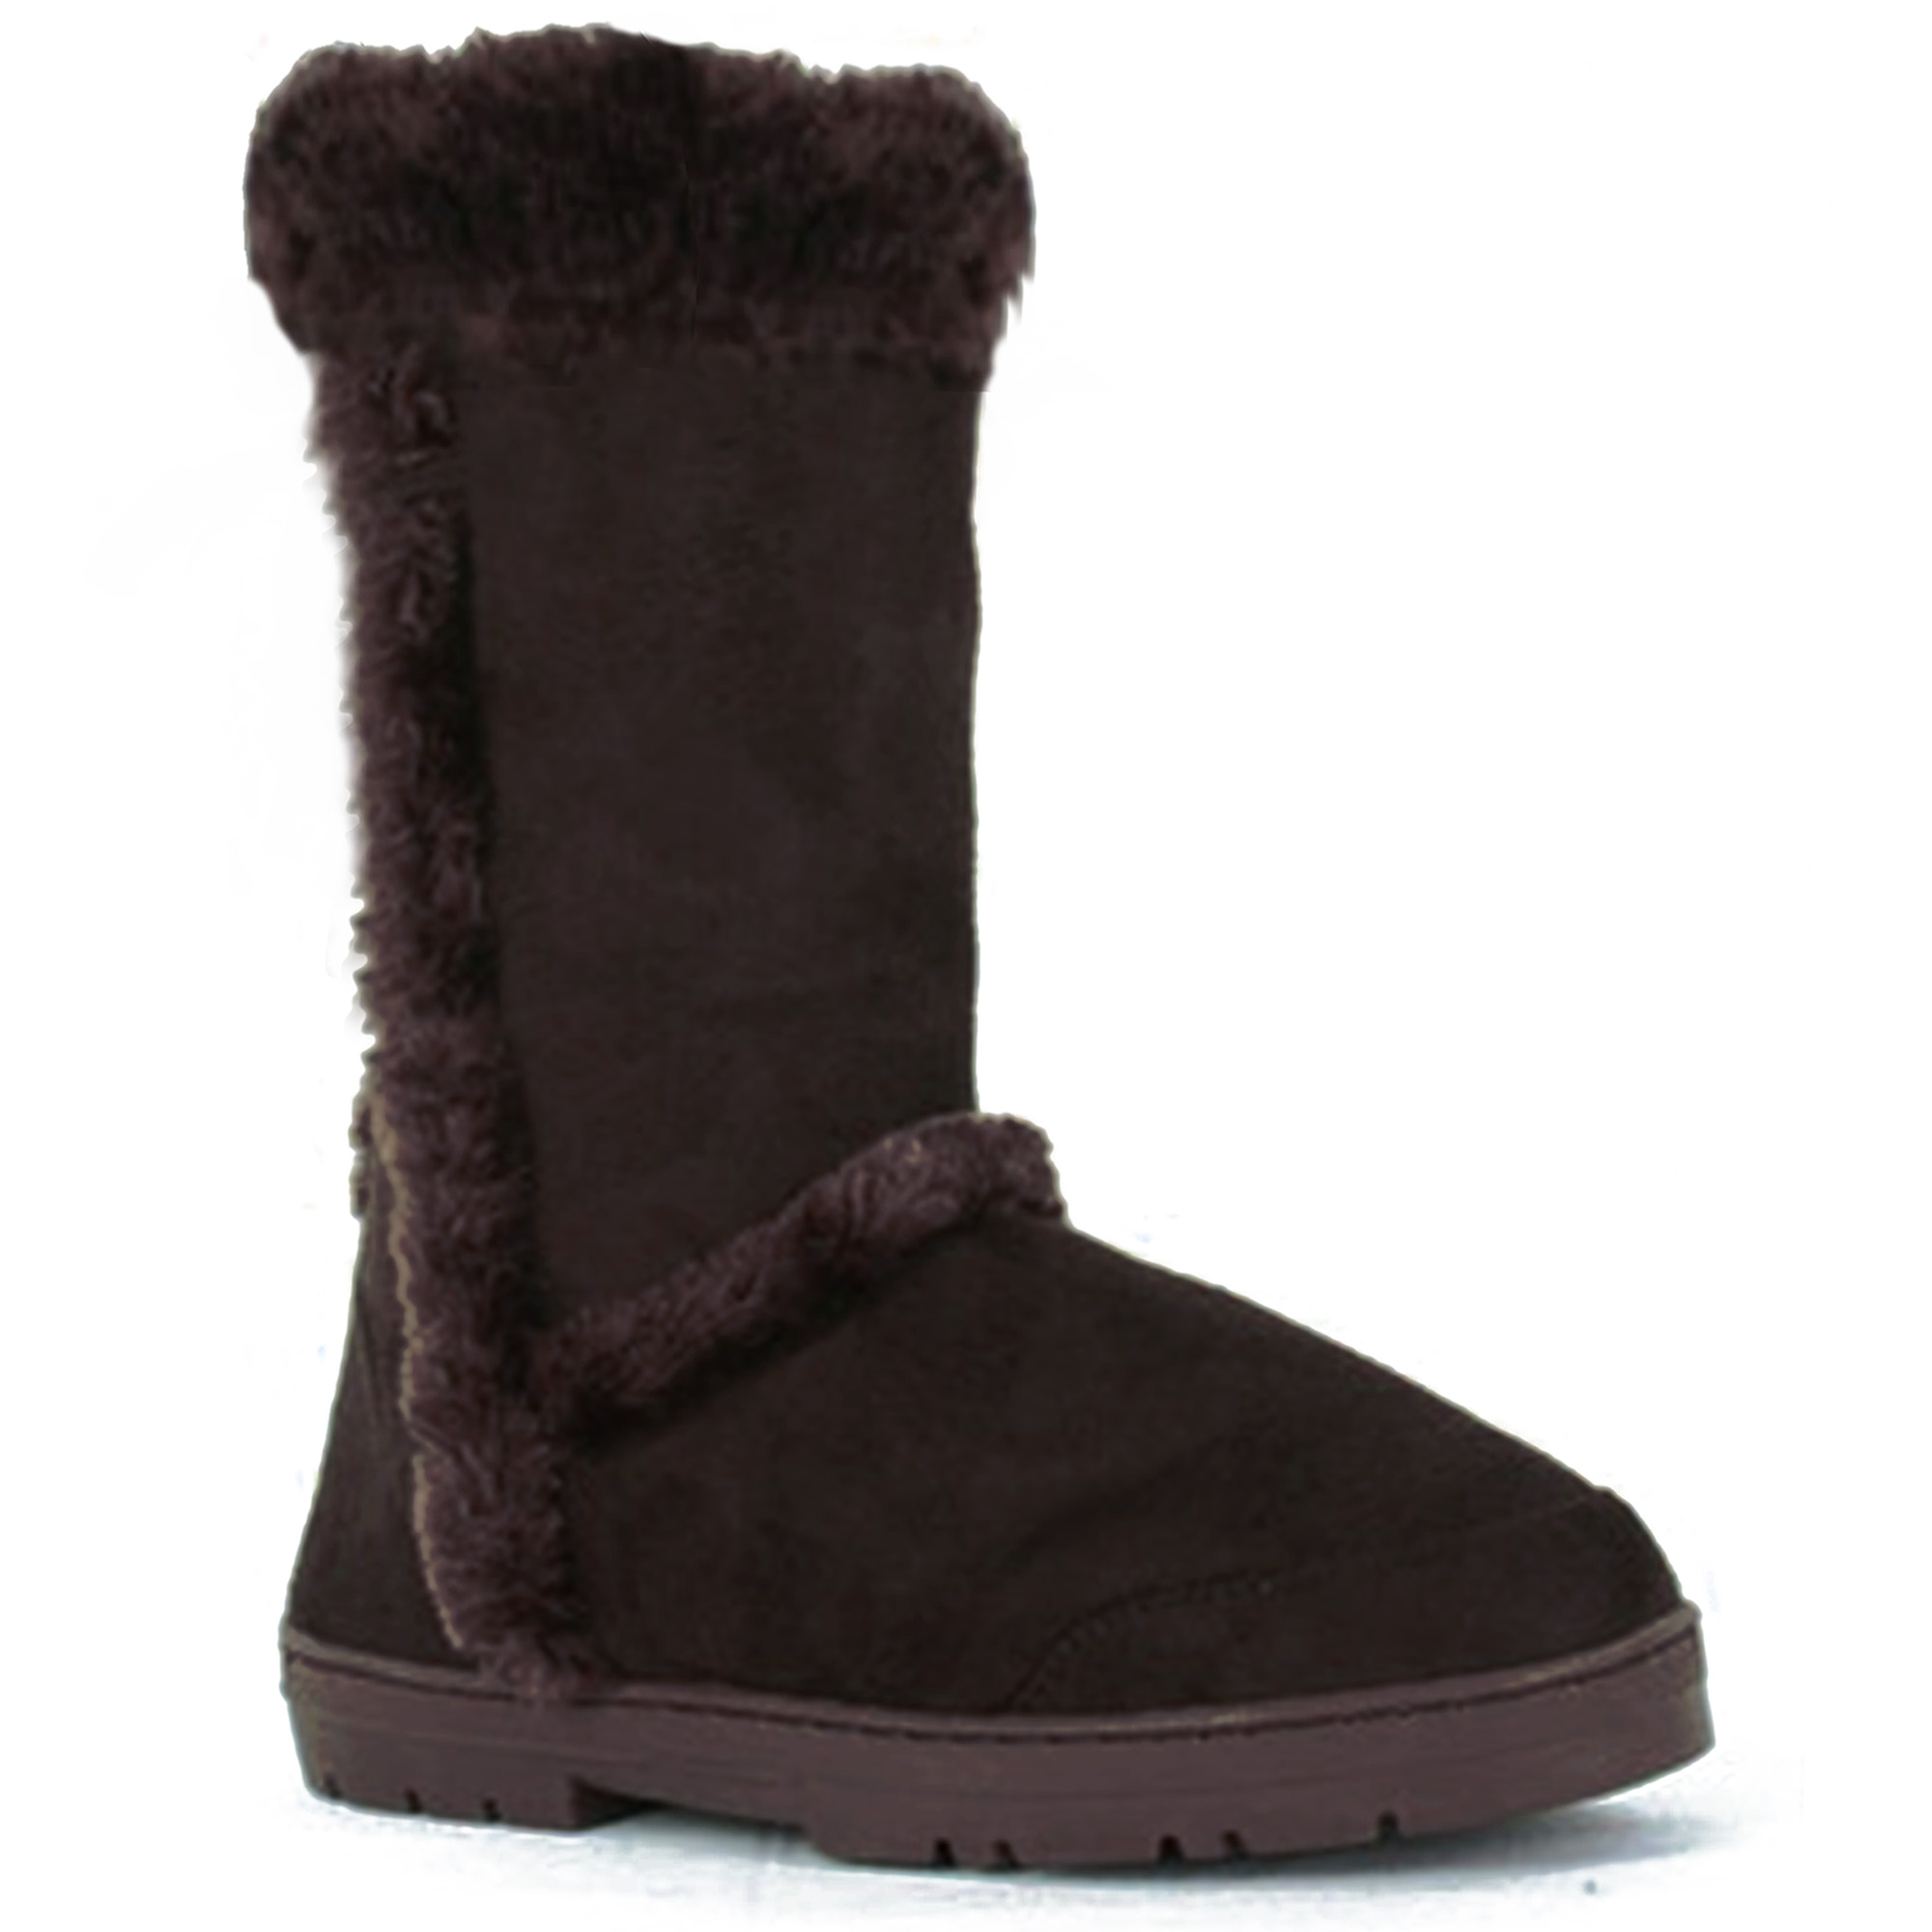 Classic 5825 Nature fur Wool lined real sheepskin leather snow boots for women winter shoes waterproof High Quality free shiping